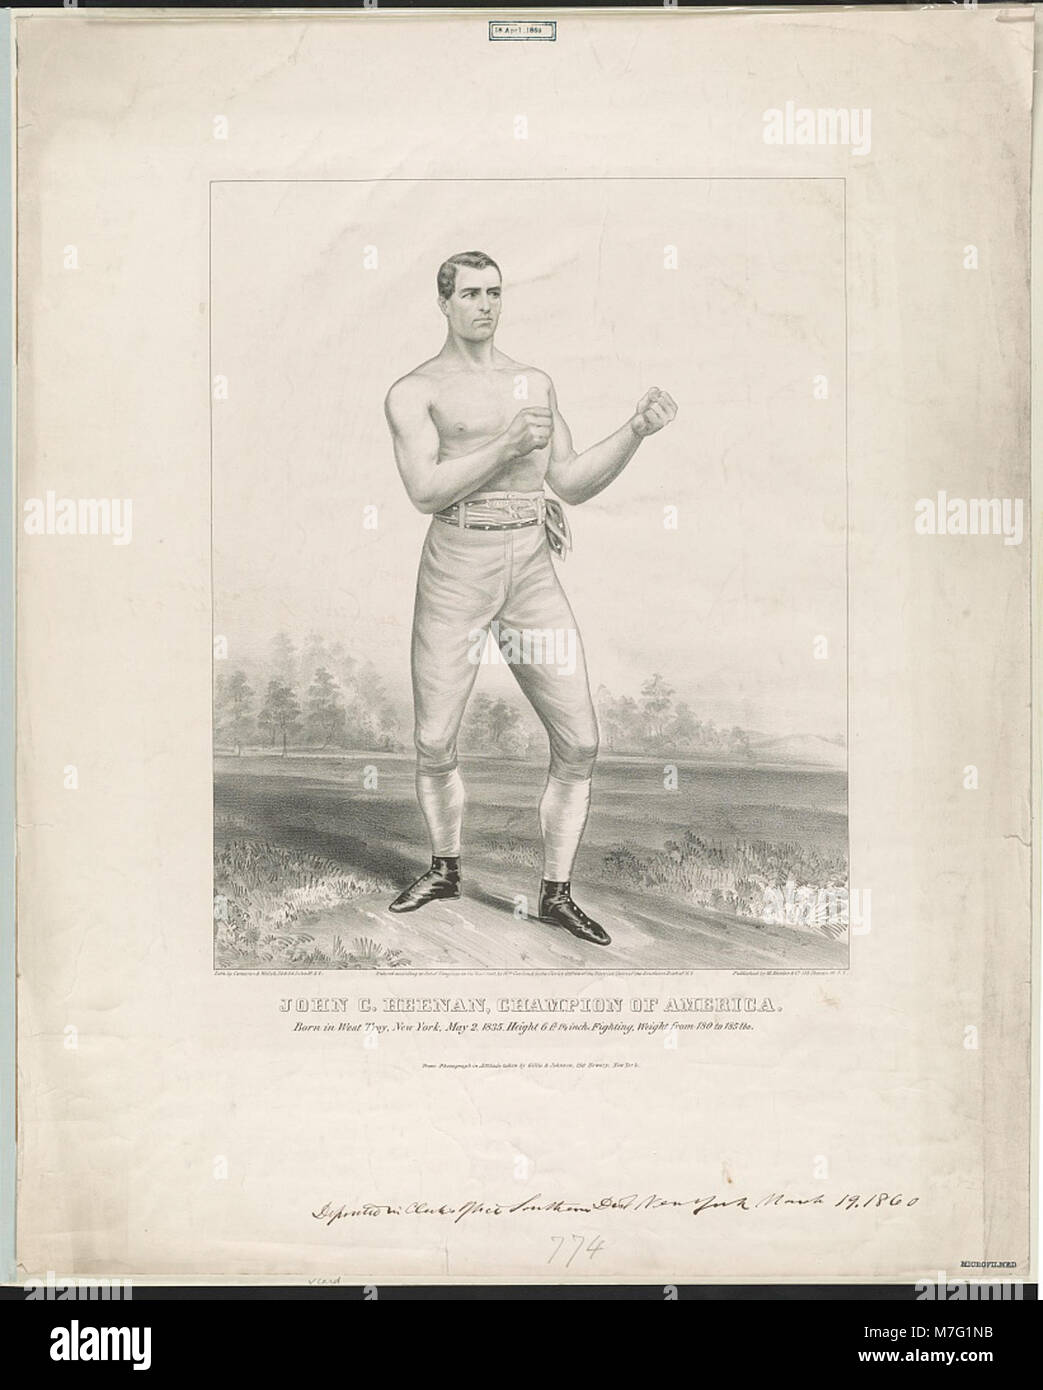 John C. Heenan, champion of America born in West Troy, New York, May 2, 1835, height 6 ft. 1 1-2 inch, fighting - Stock Image